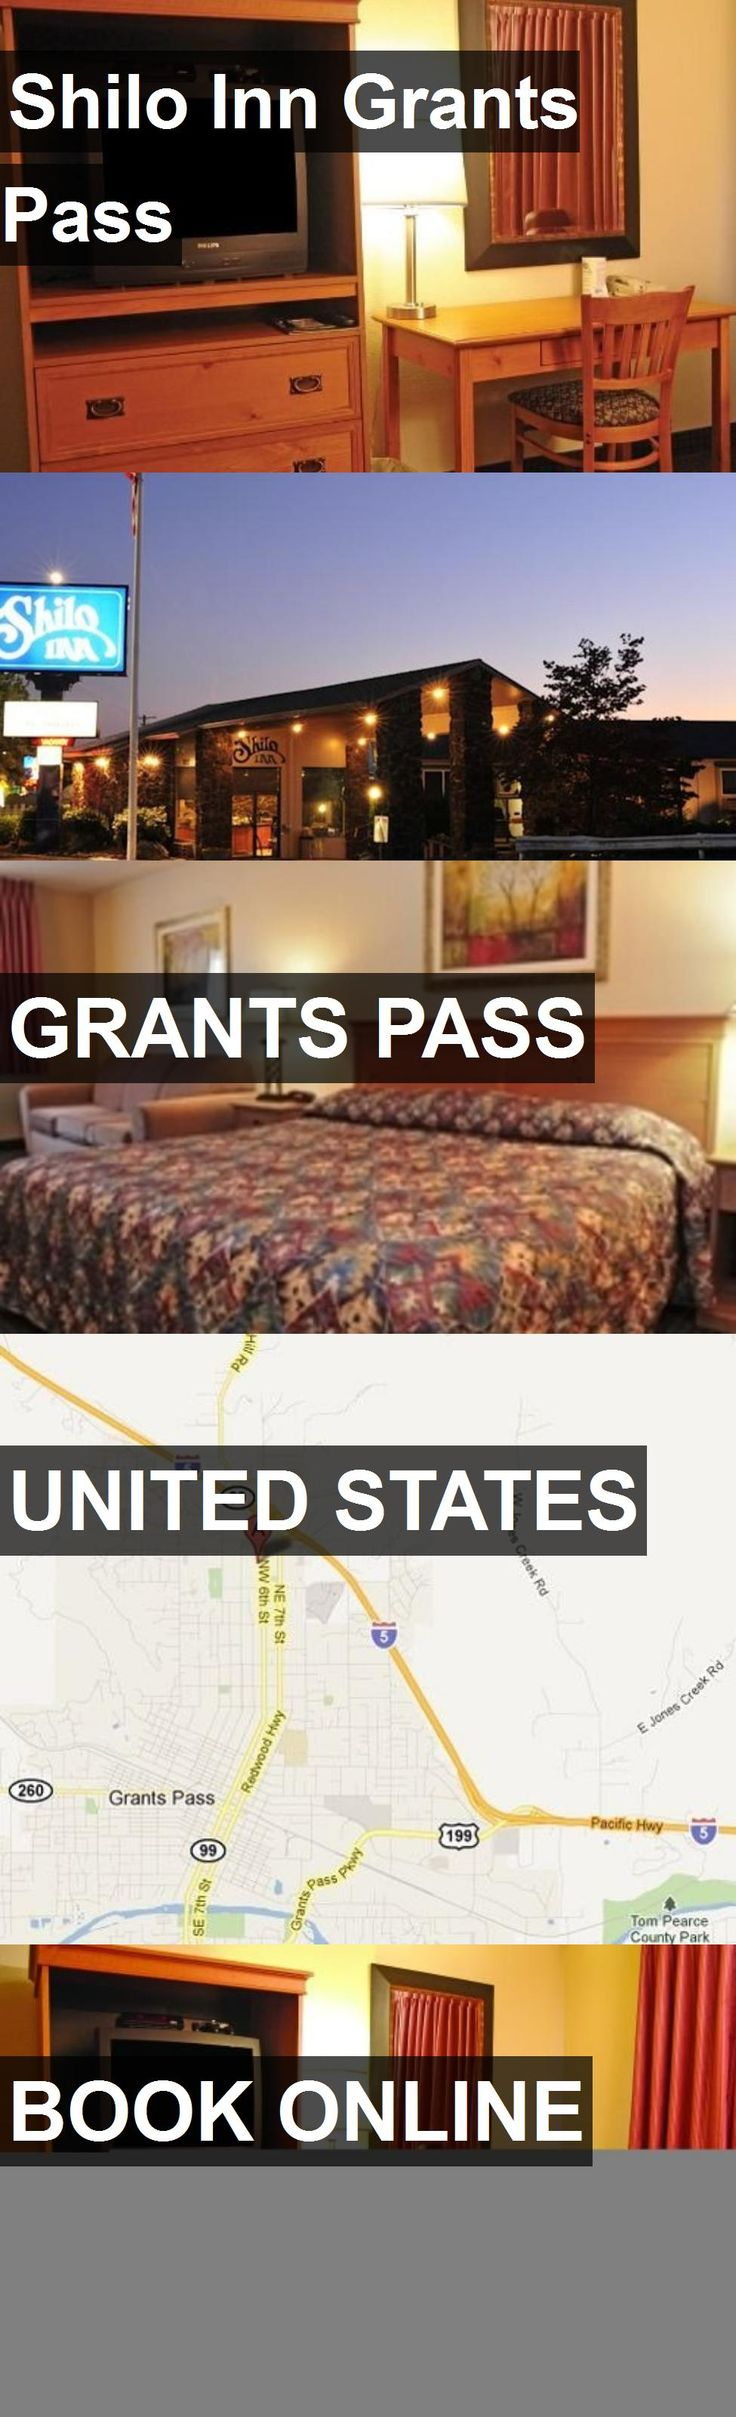 Hotel Shilo Inn Grants Pass in Grants Pass, United States. For more information, photos, reviews and best prices please follow the link. #UnitedStates #GrantsPass #travel #vacation #hotel